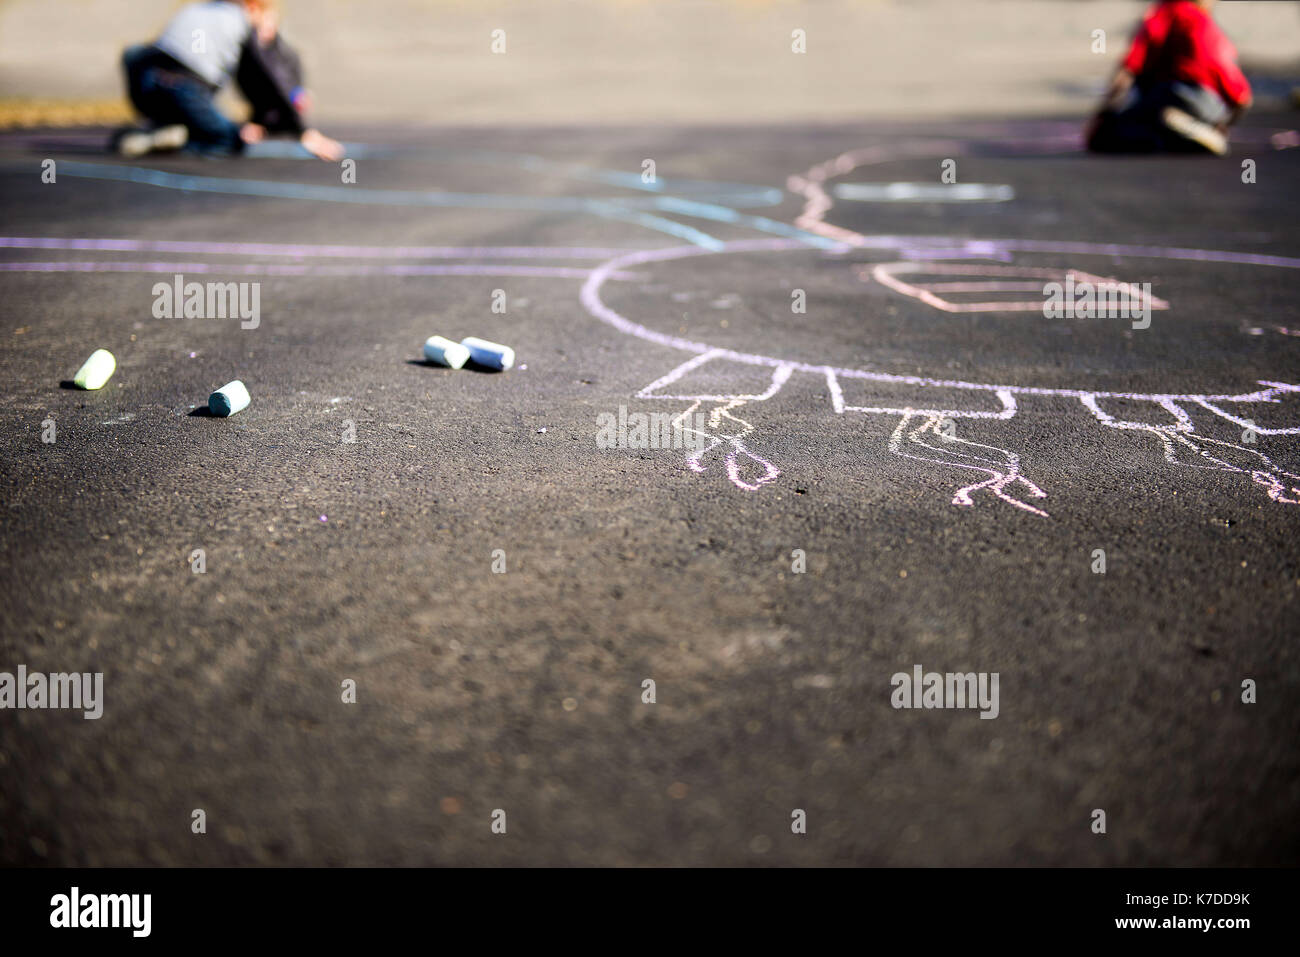 High angle view of chalk drawing on street - Stock Image